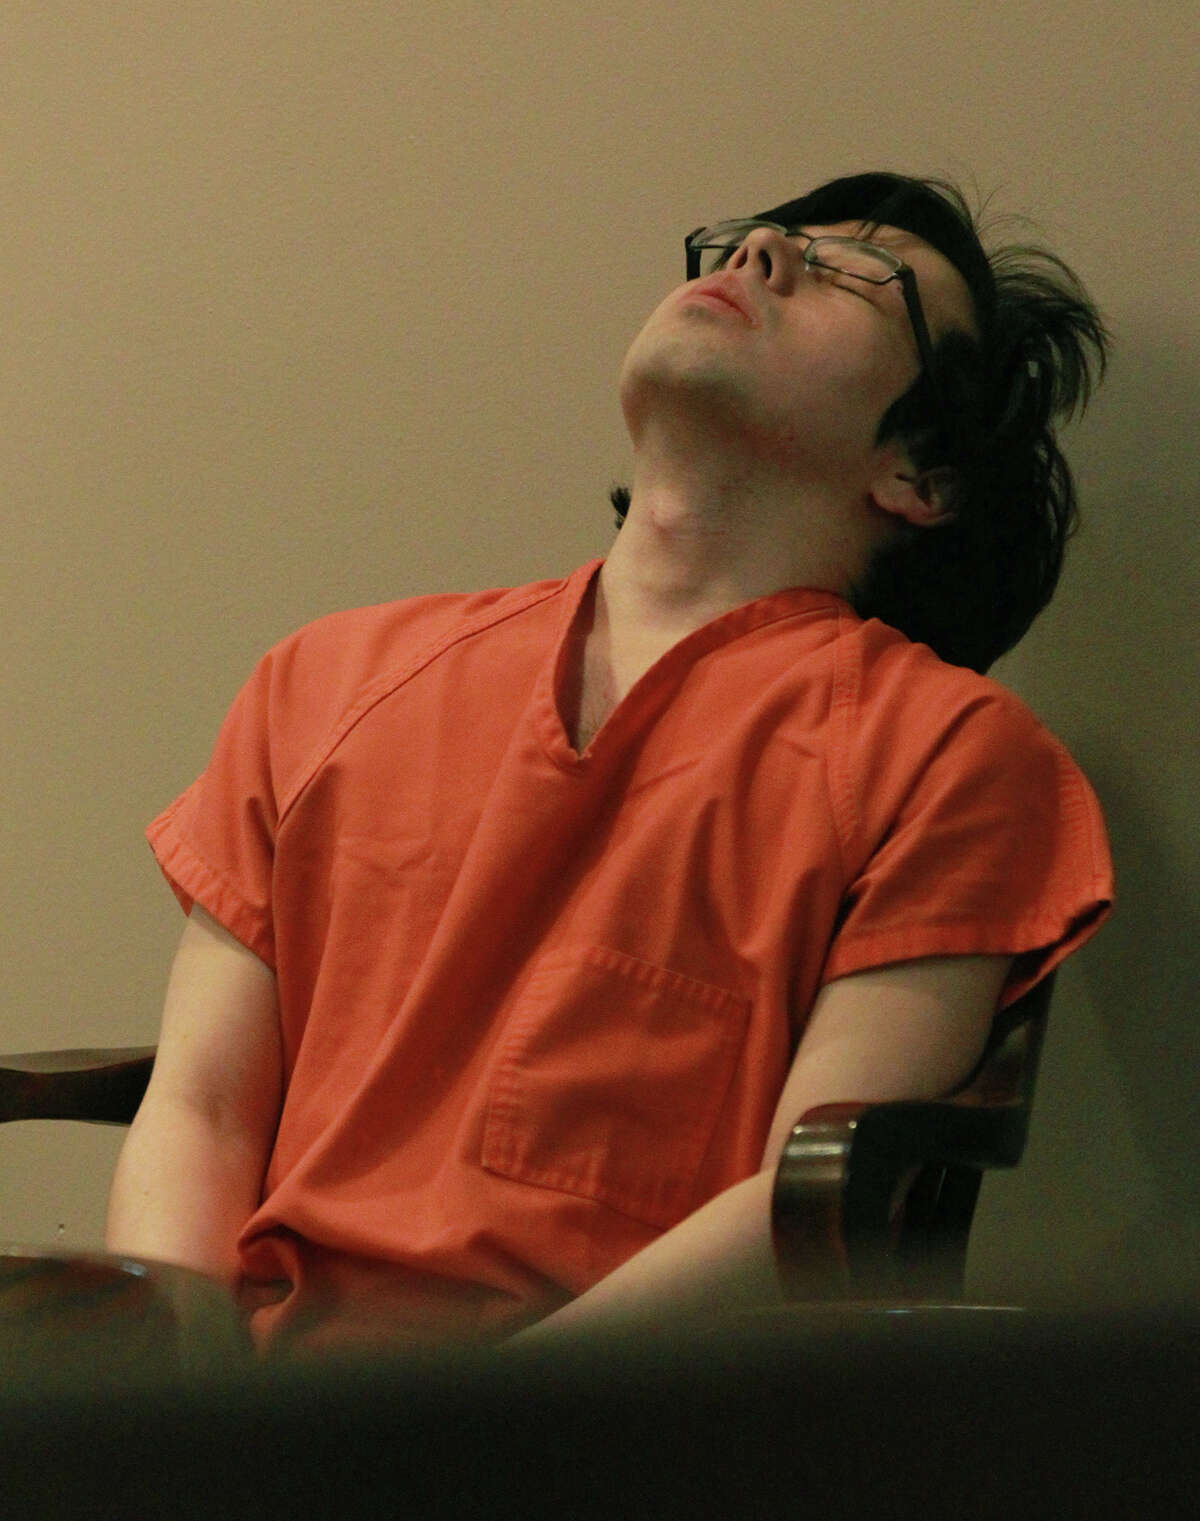 """Defendant Yu Masaki leans back in the 144th District Court prior to sentencing Thursday July 18, 2013. Masaki pleaded guilty in March to shooting and killing Juan Carlos """"J.C."""" Escamilla and also shooting and wounding Margaret """"Maggie McCombs. Masaki received a life sentence for the crimes."""